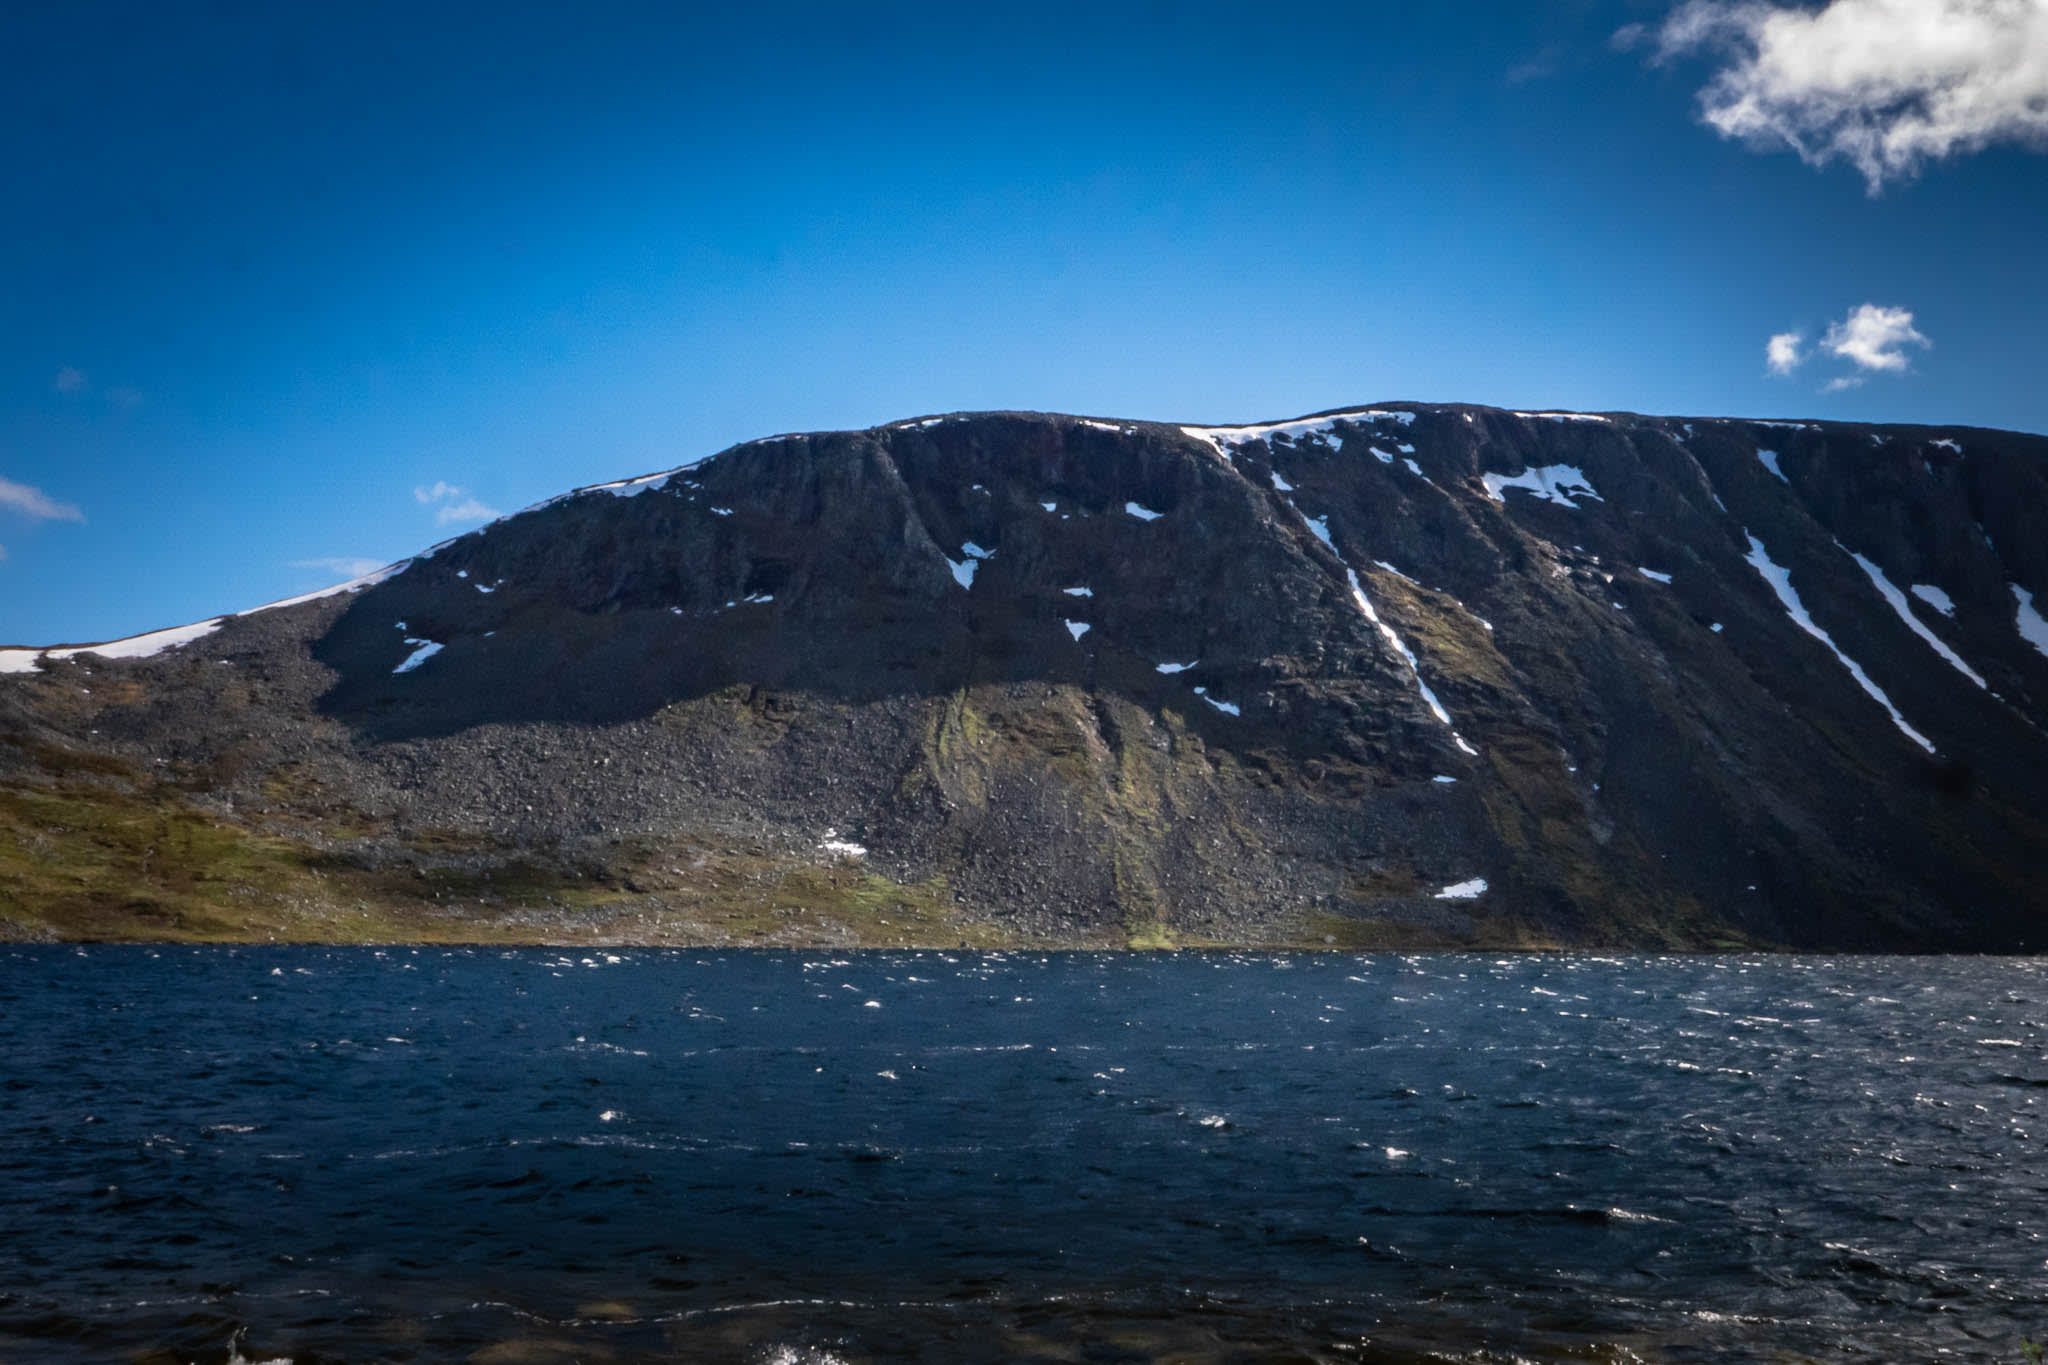 Nordic Nature view with Mountain and Sea